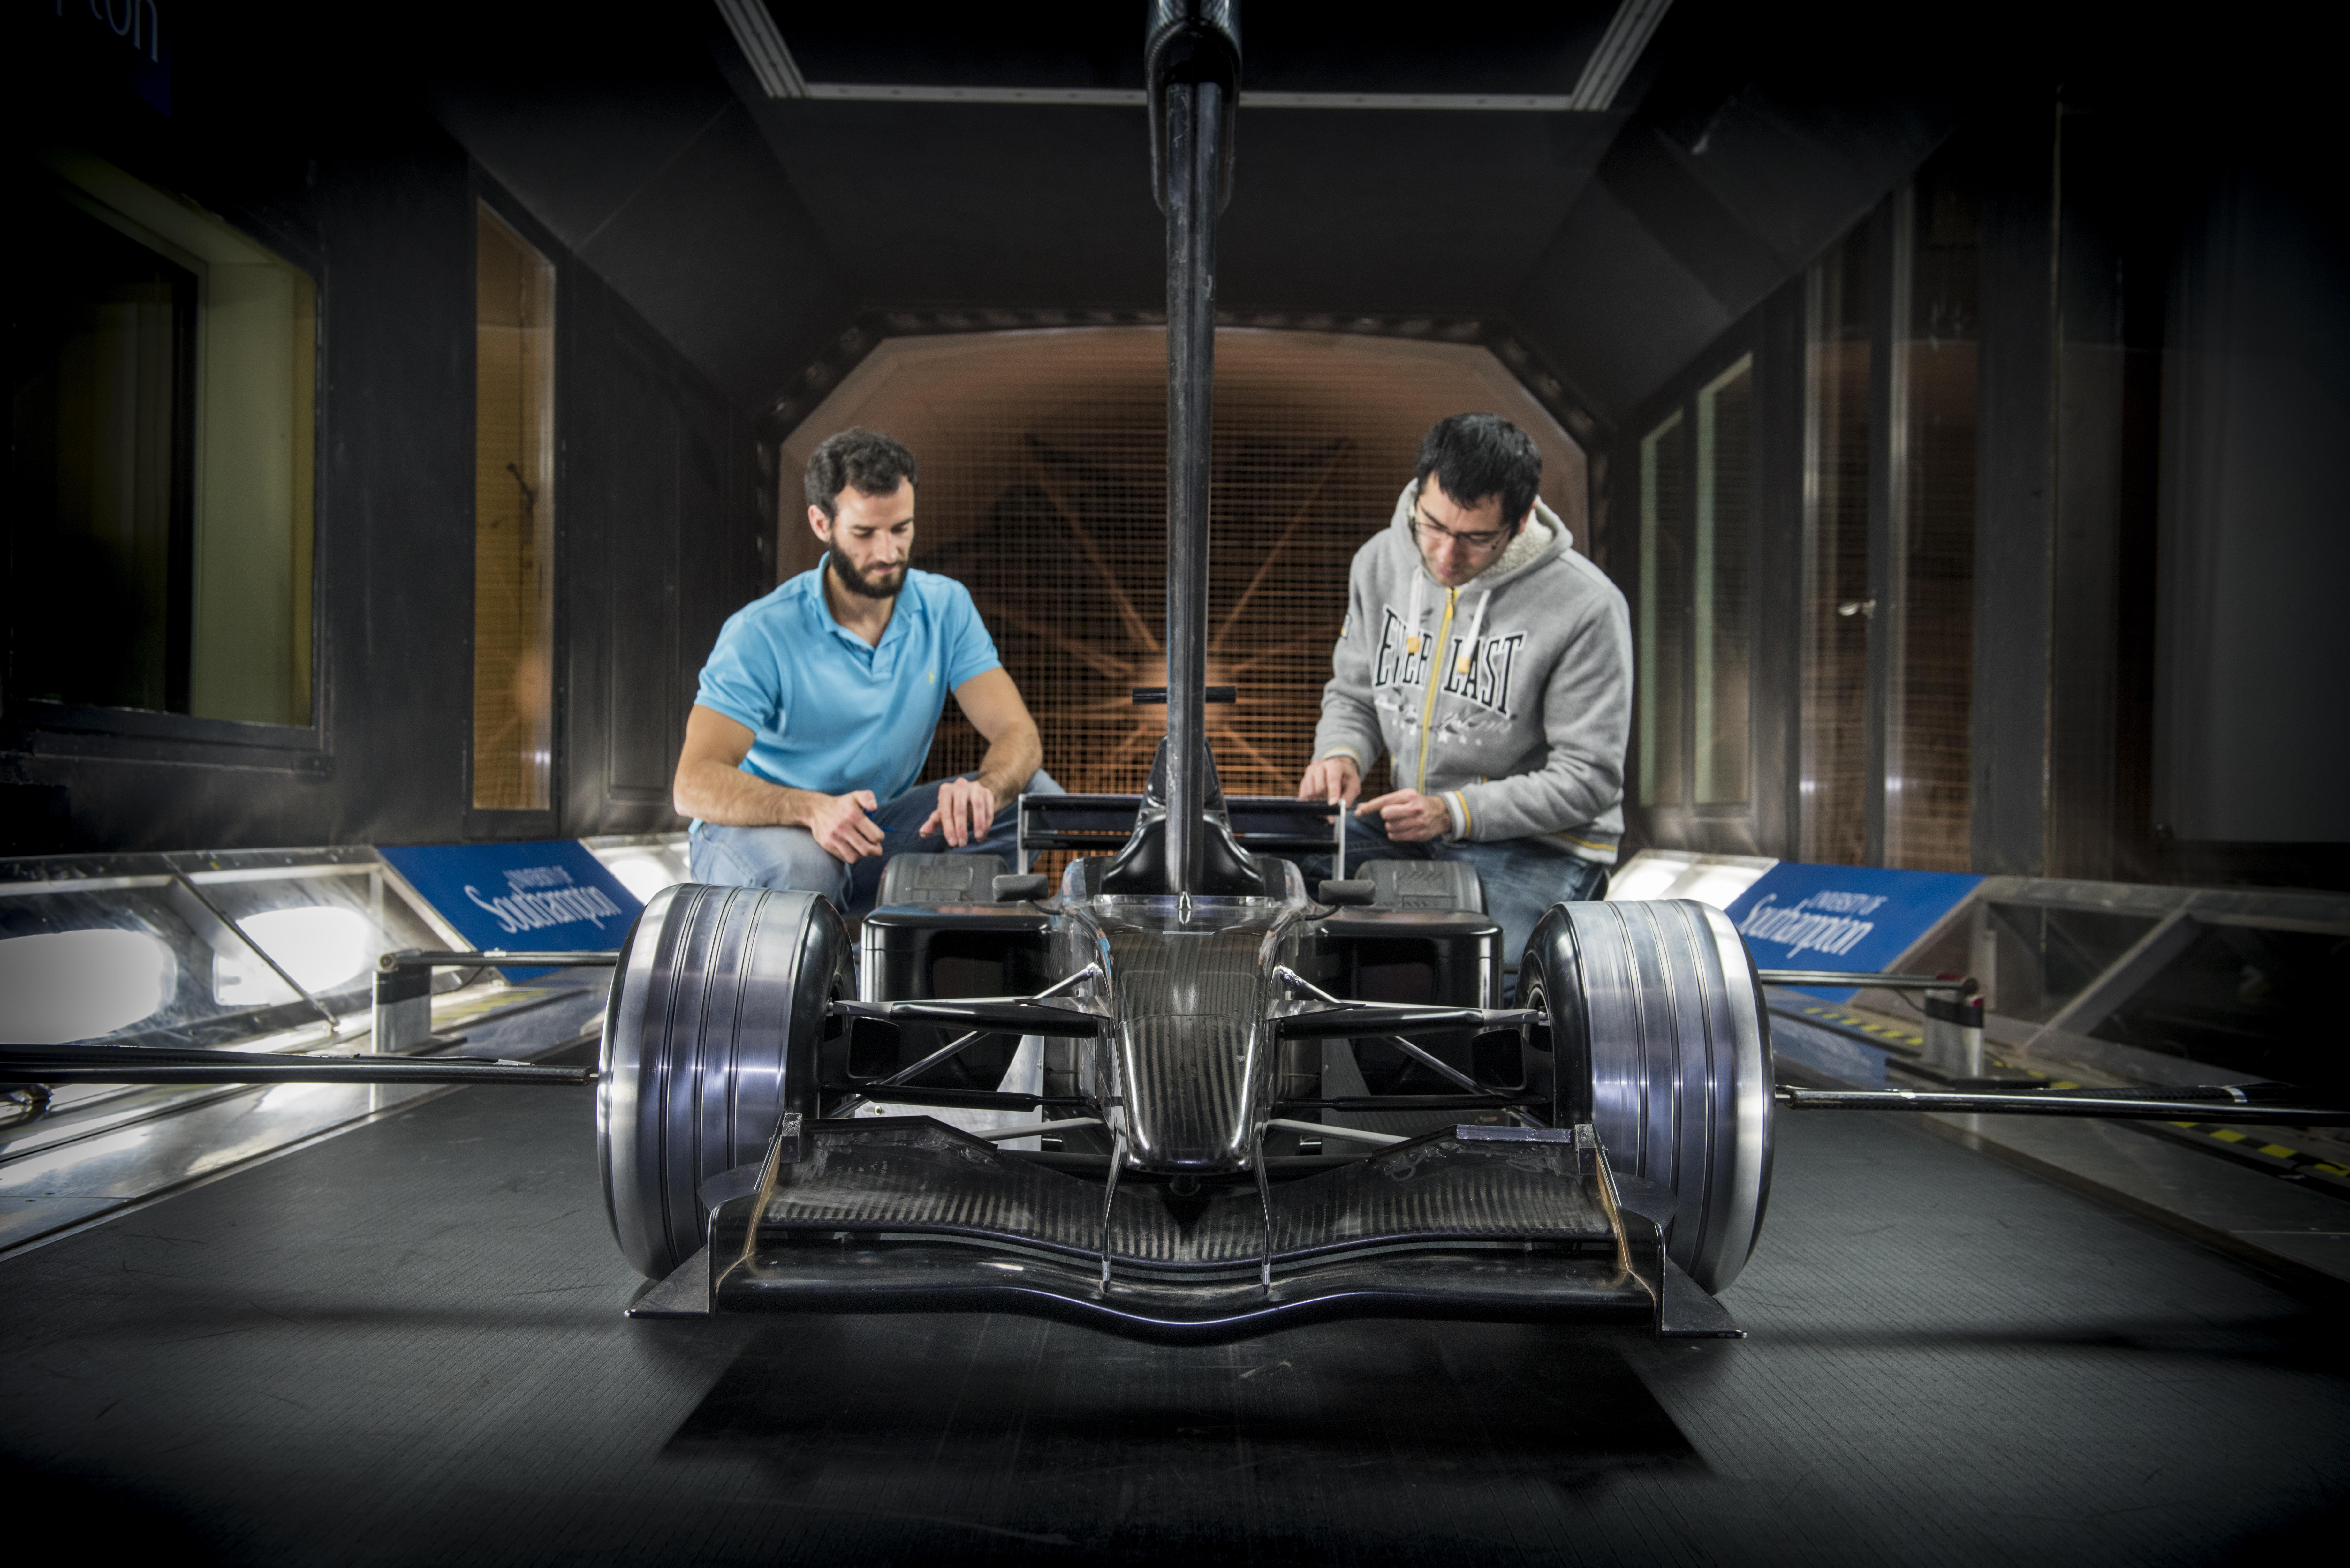 Msc Race Car Aerodynamics Engineering University Of Southampton